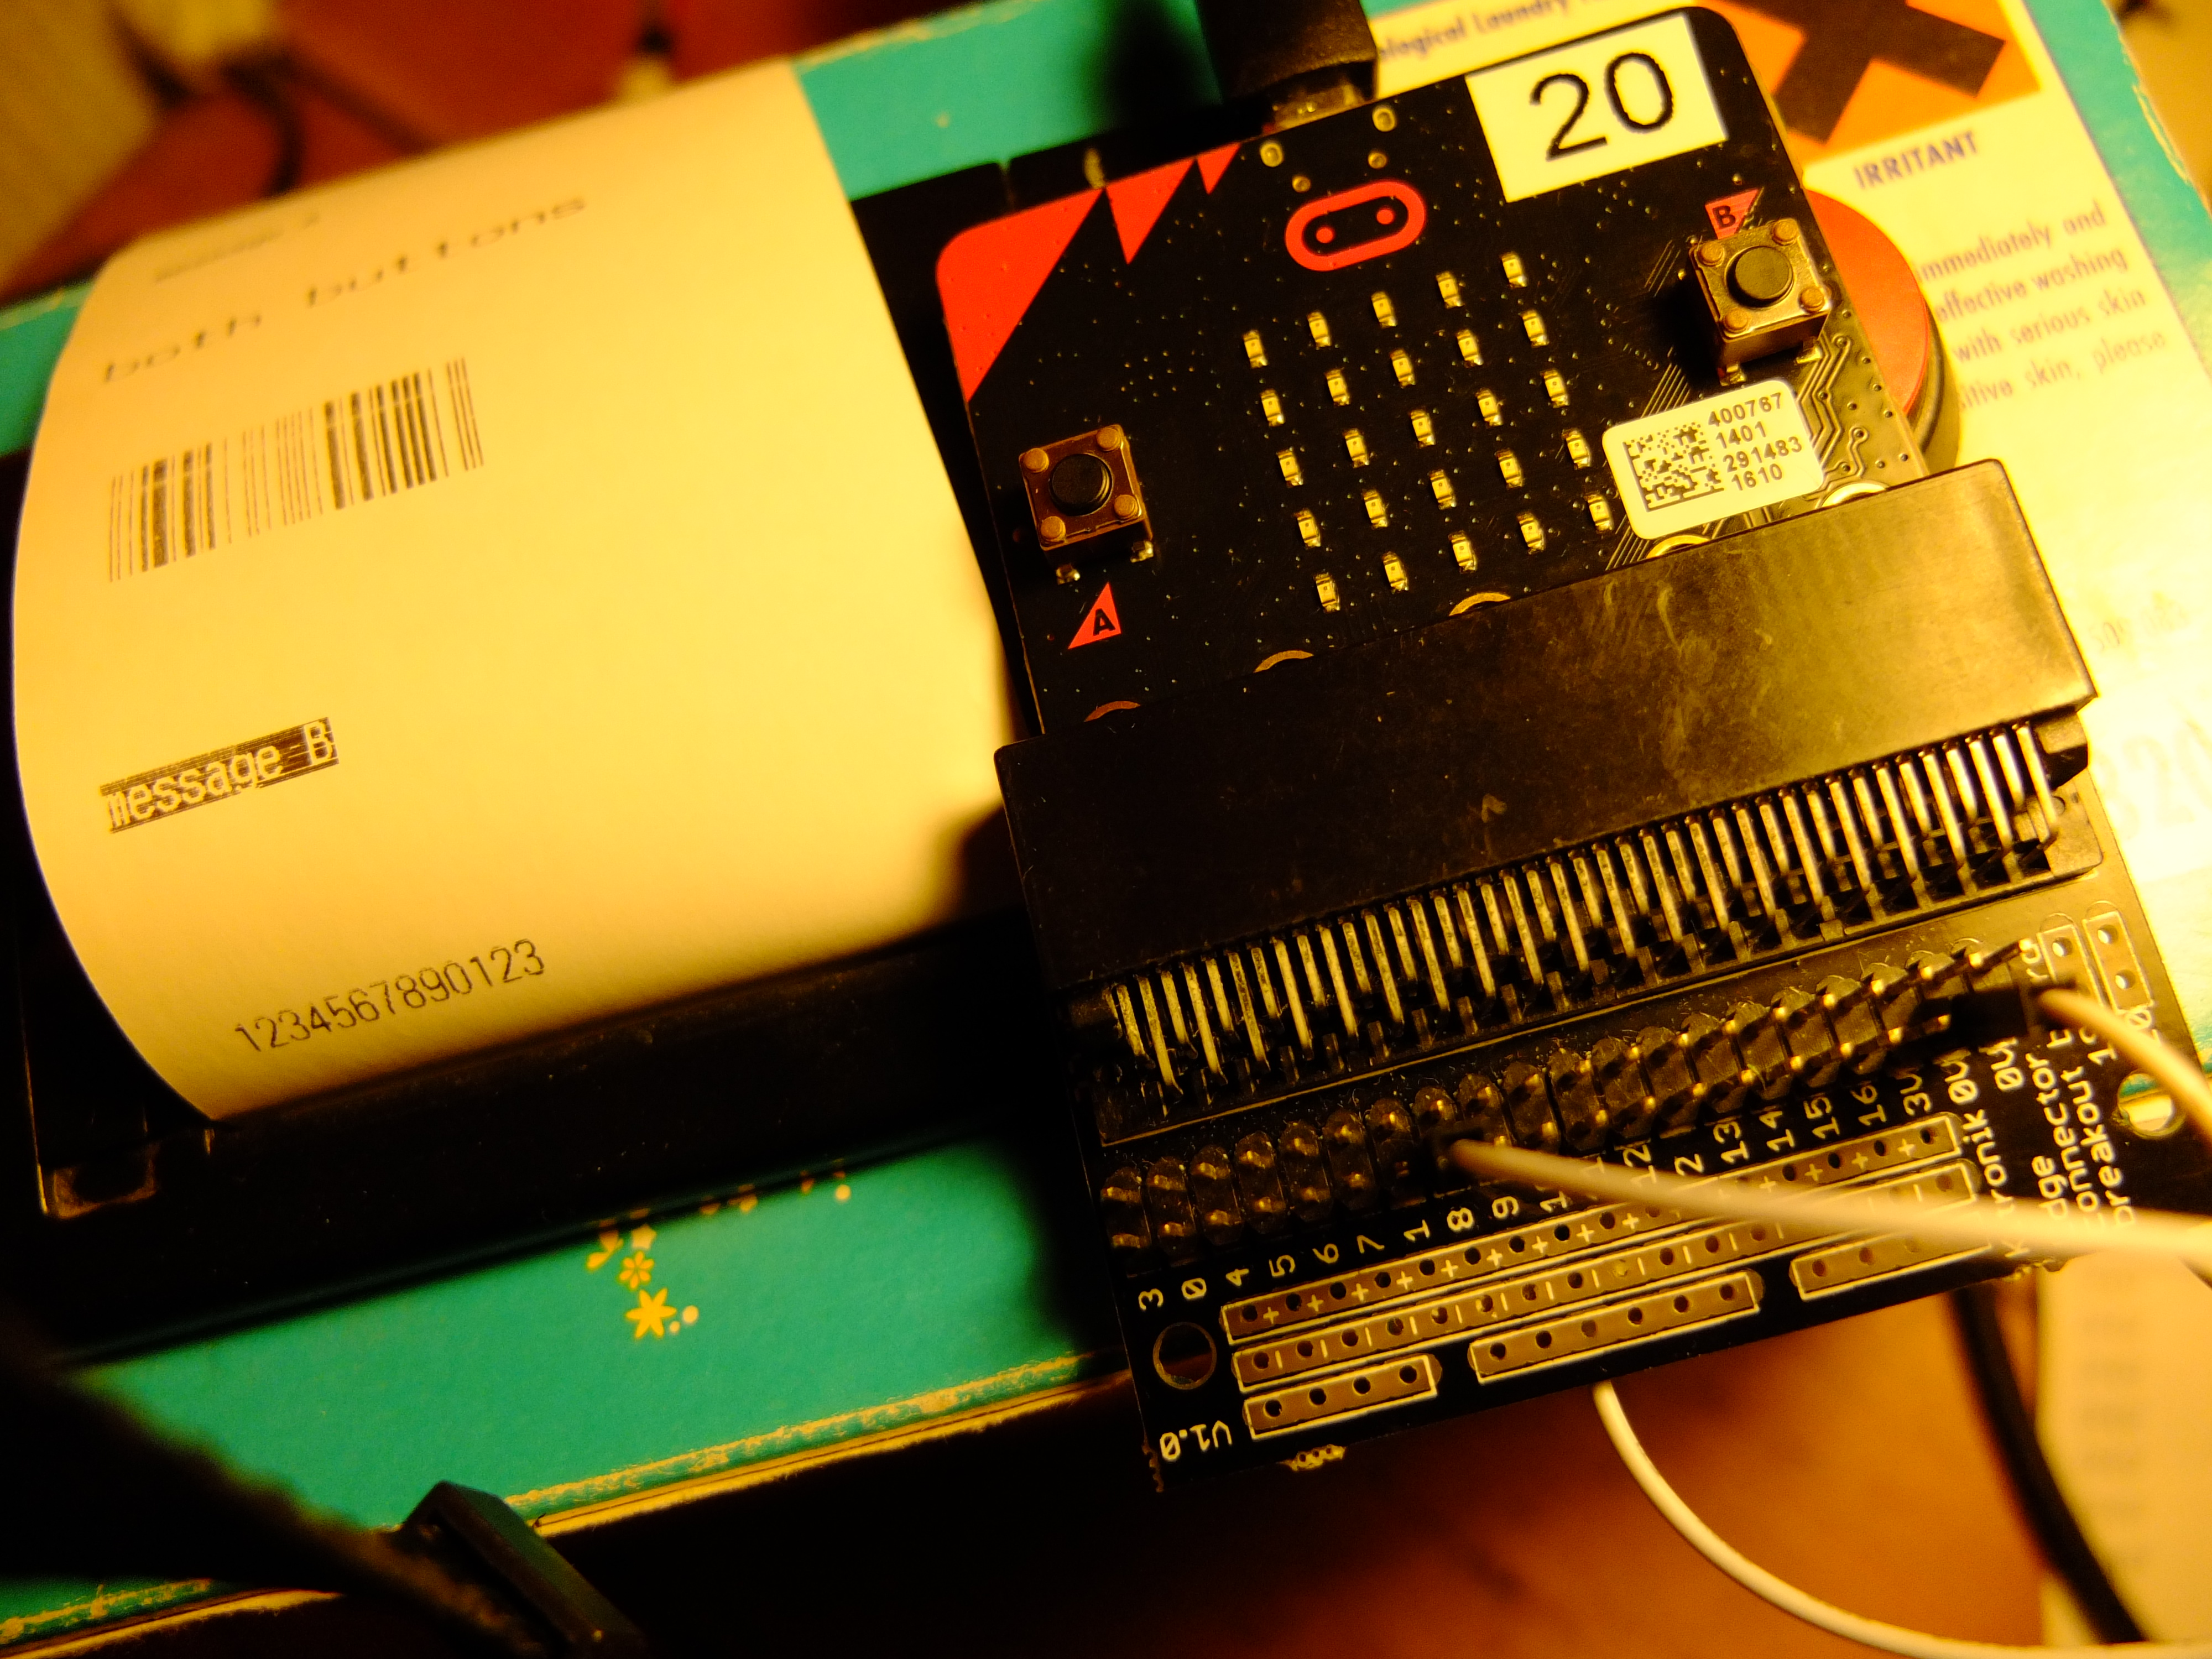 Connecting A Thermal Printer To Bbc Microbit Blog My Wiki Python 1401 Wiring Diagram It